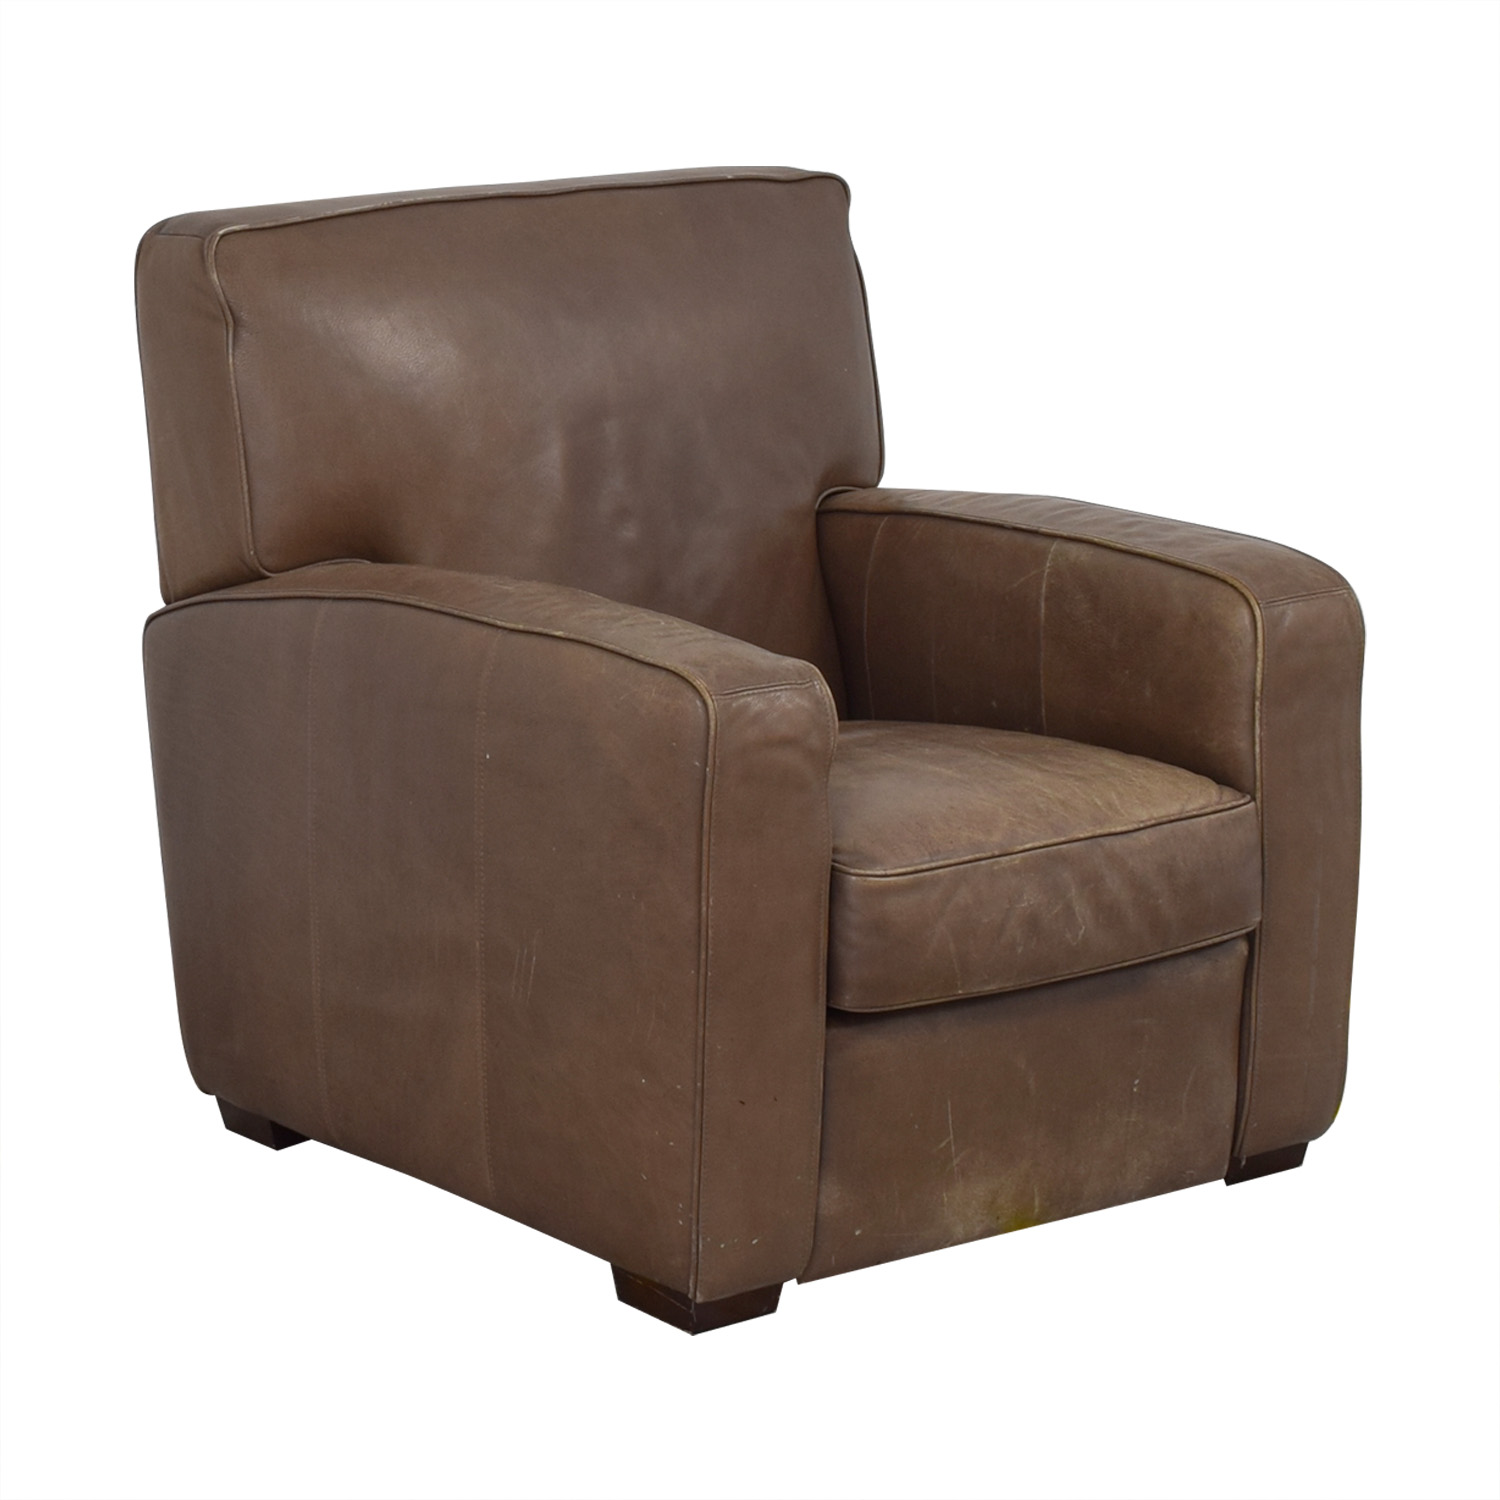 Crate & Barrel Crate & Barrel Leather Recliner Chair nyc